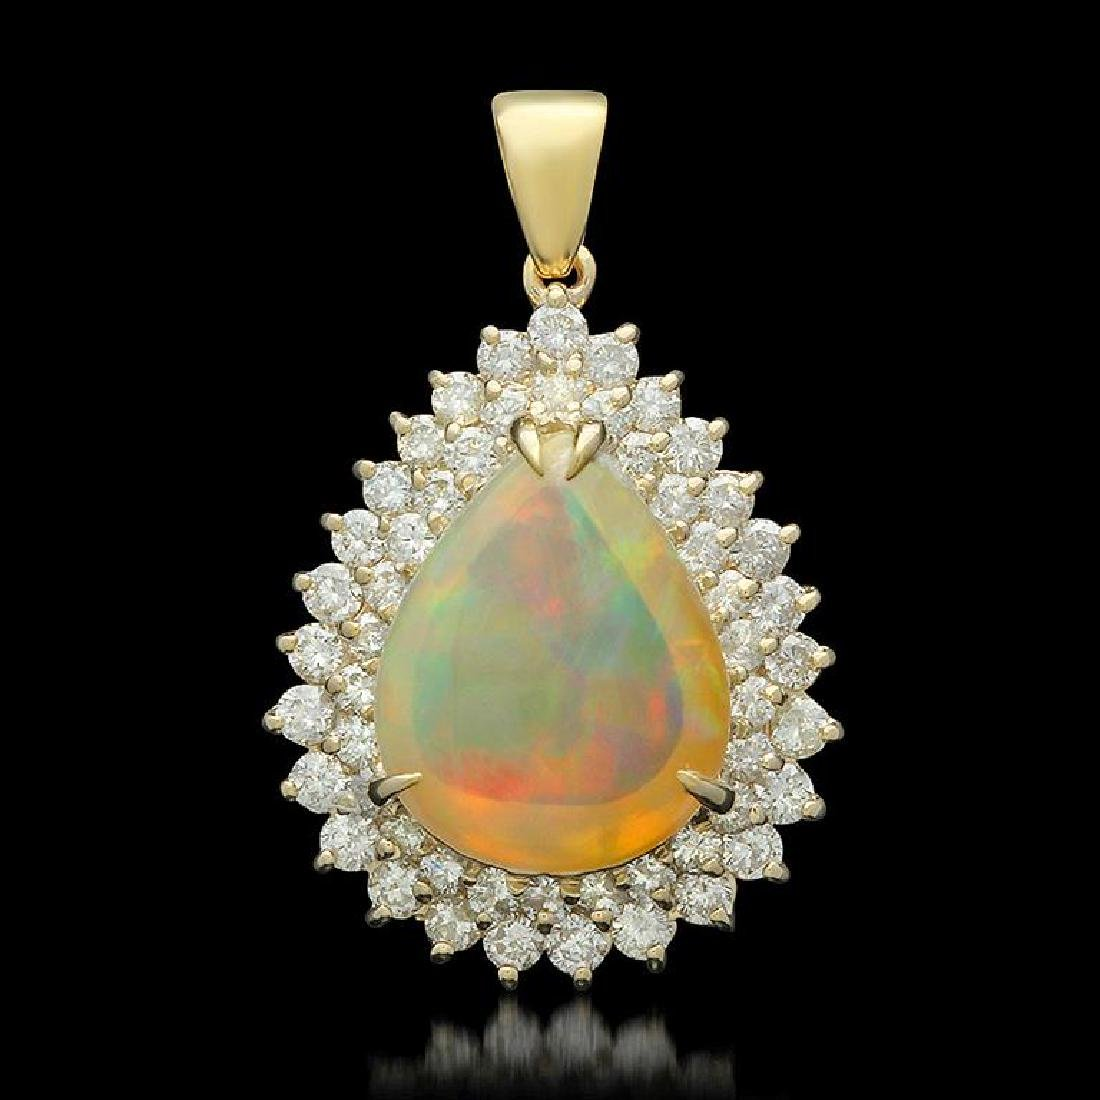 14K Gold 6.64ct Opal 1.95ct Diamond Pendant